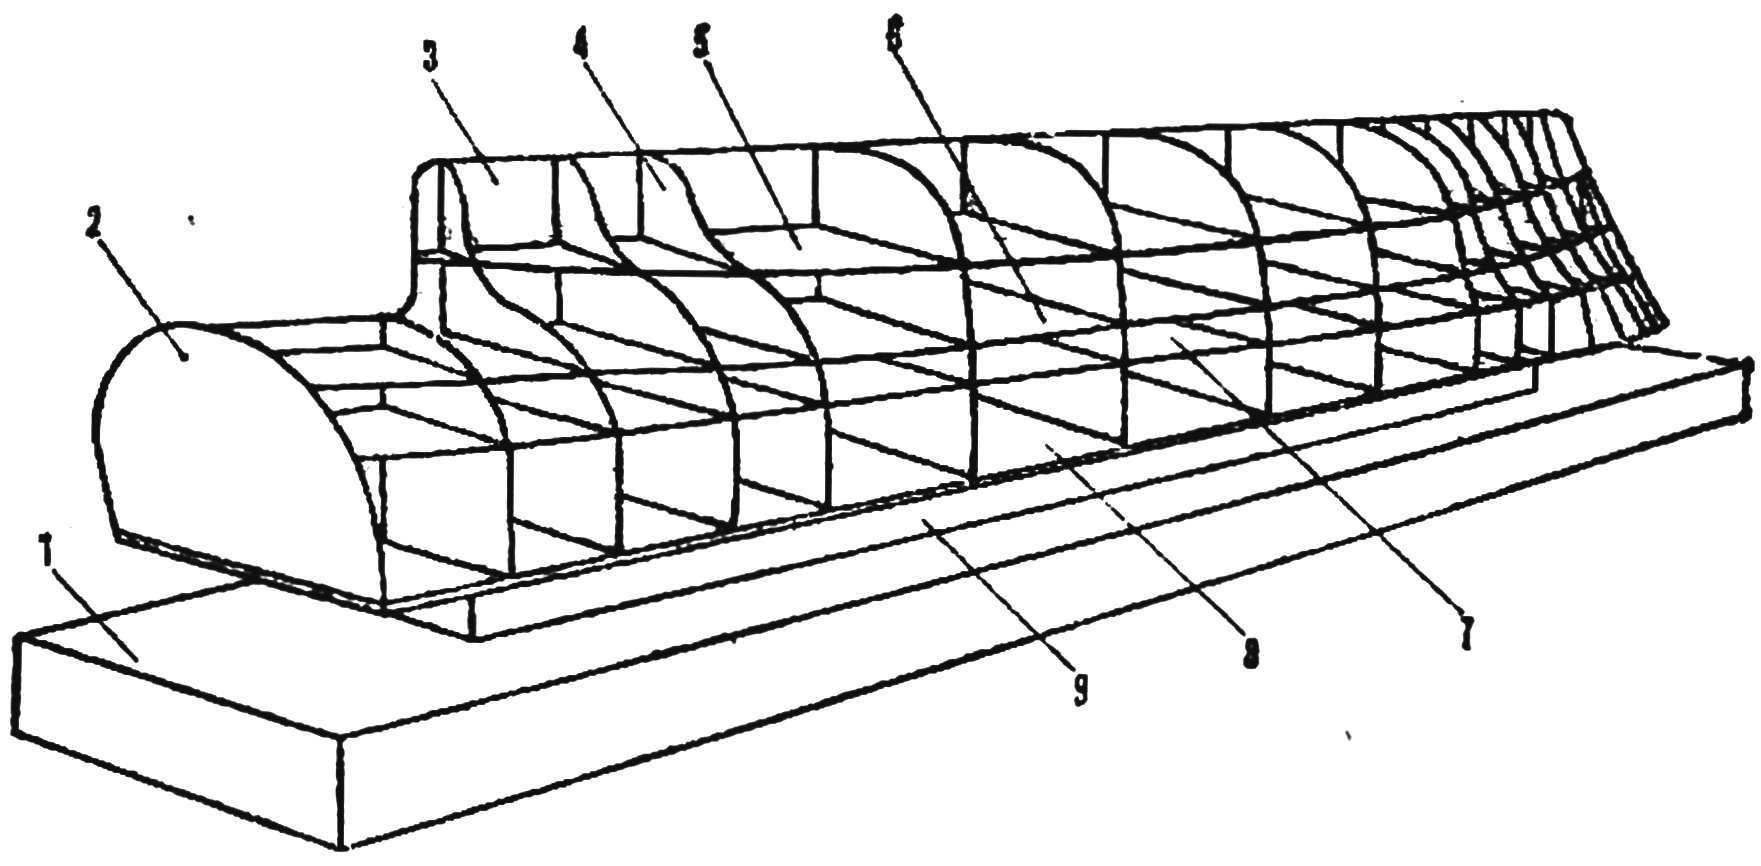 Fig. 3. Cardboard set on the Board-the stocks